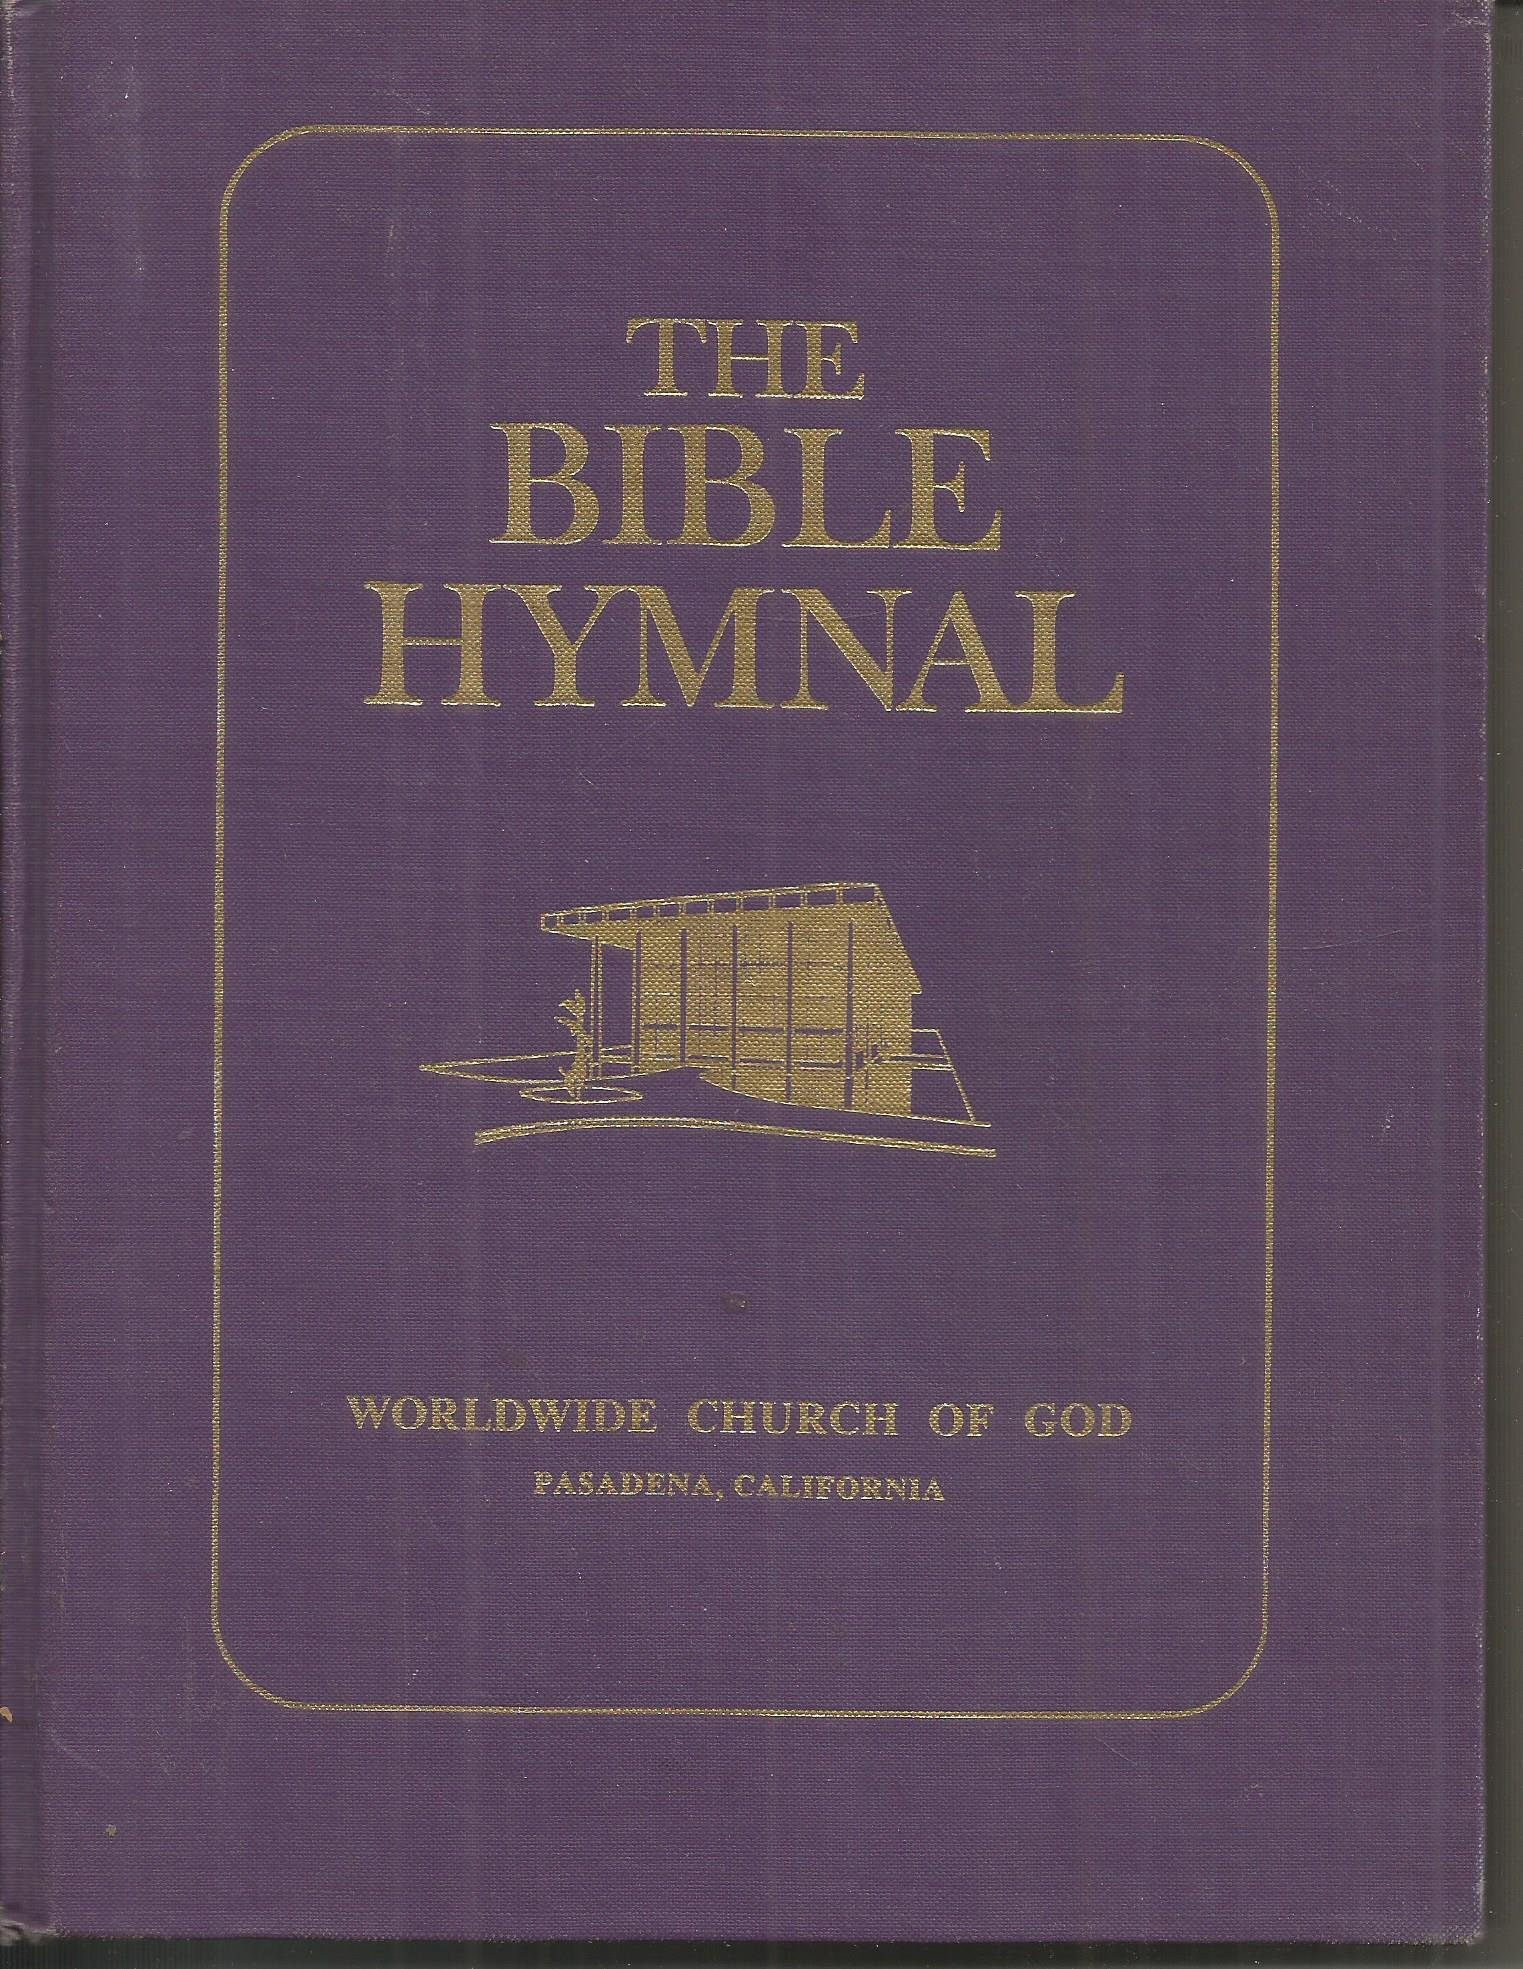 The Bible Hymnal  Worldwide Church of God : Worldwide Church